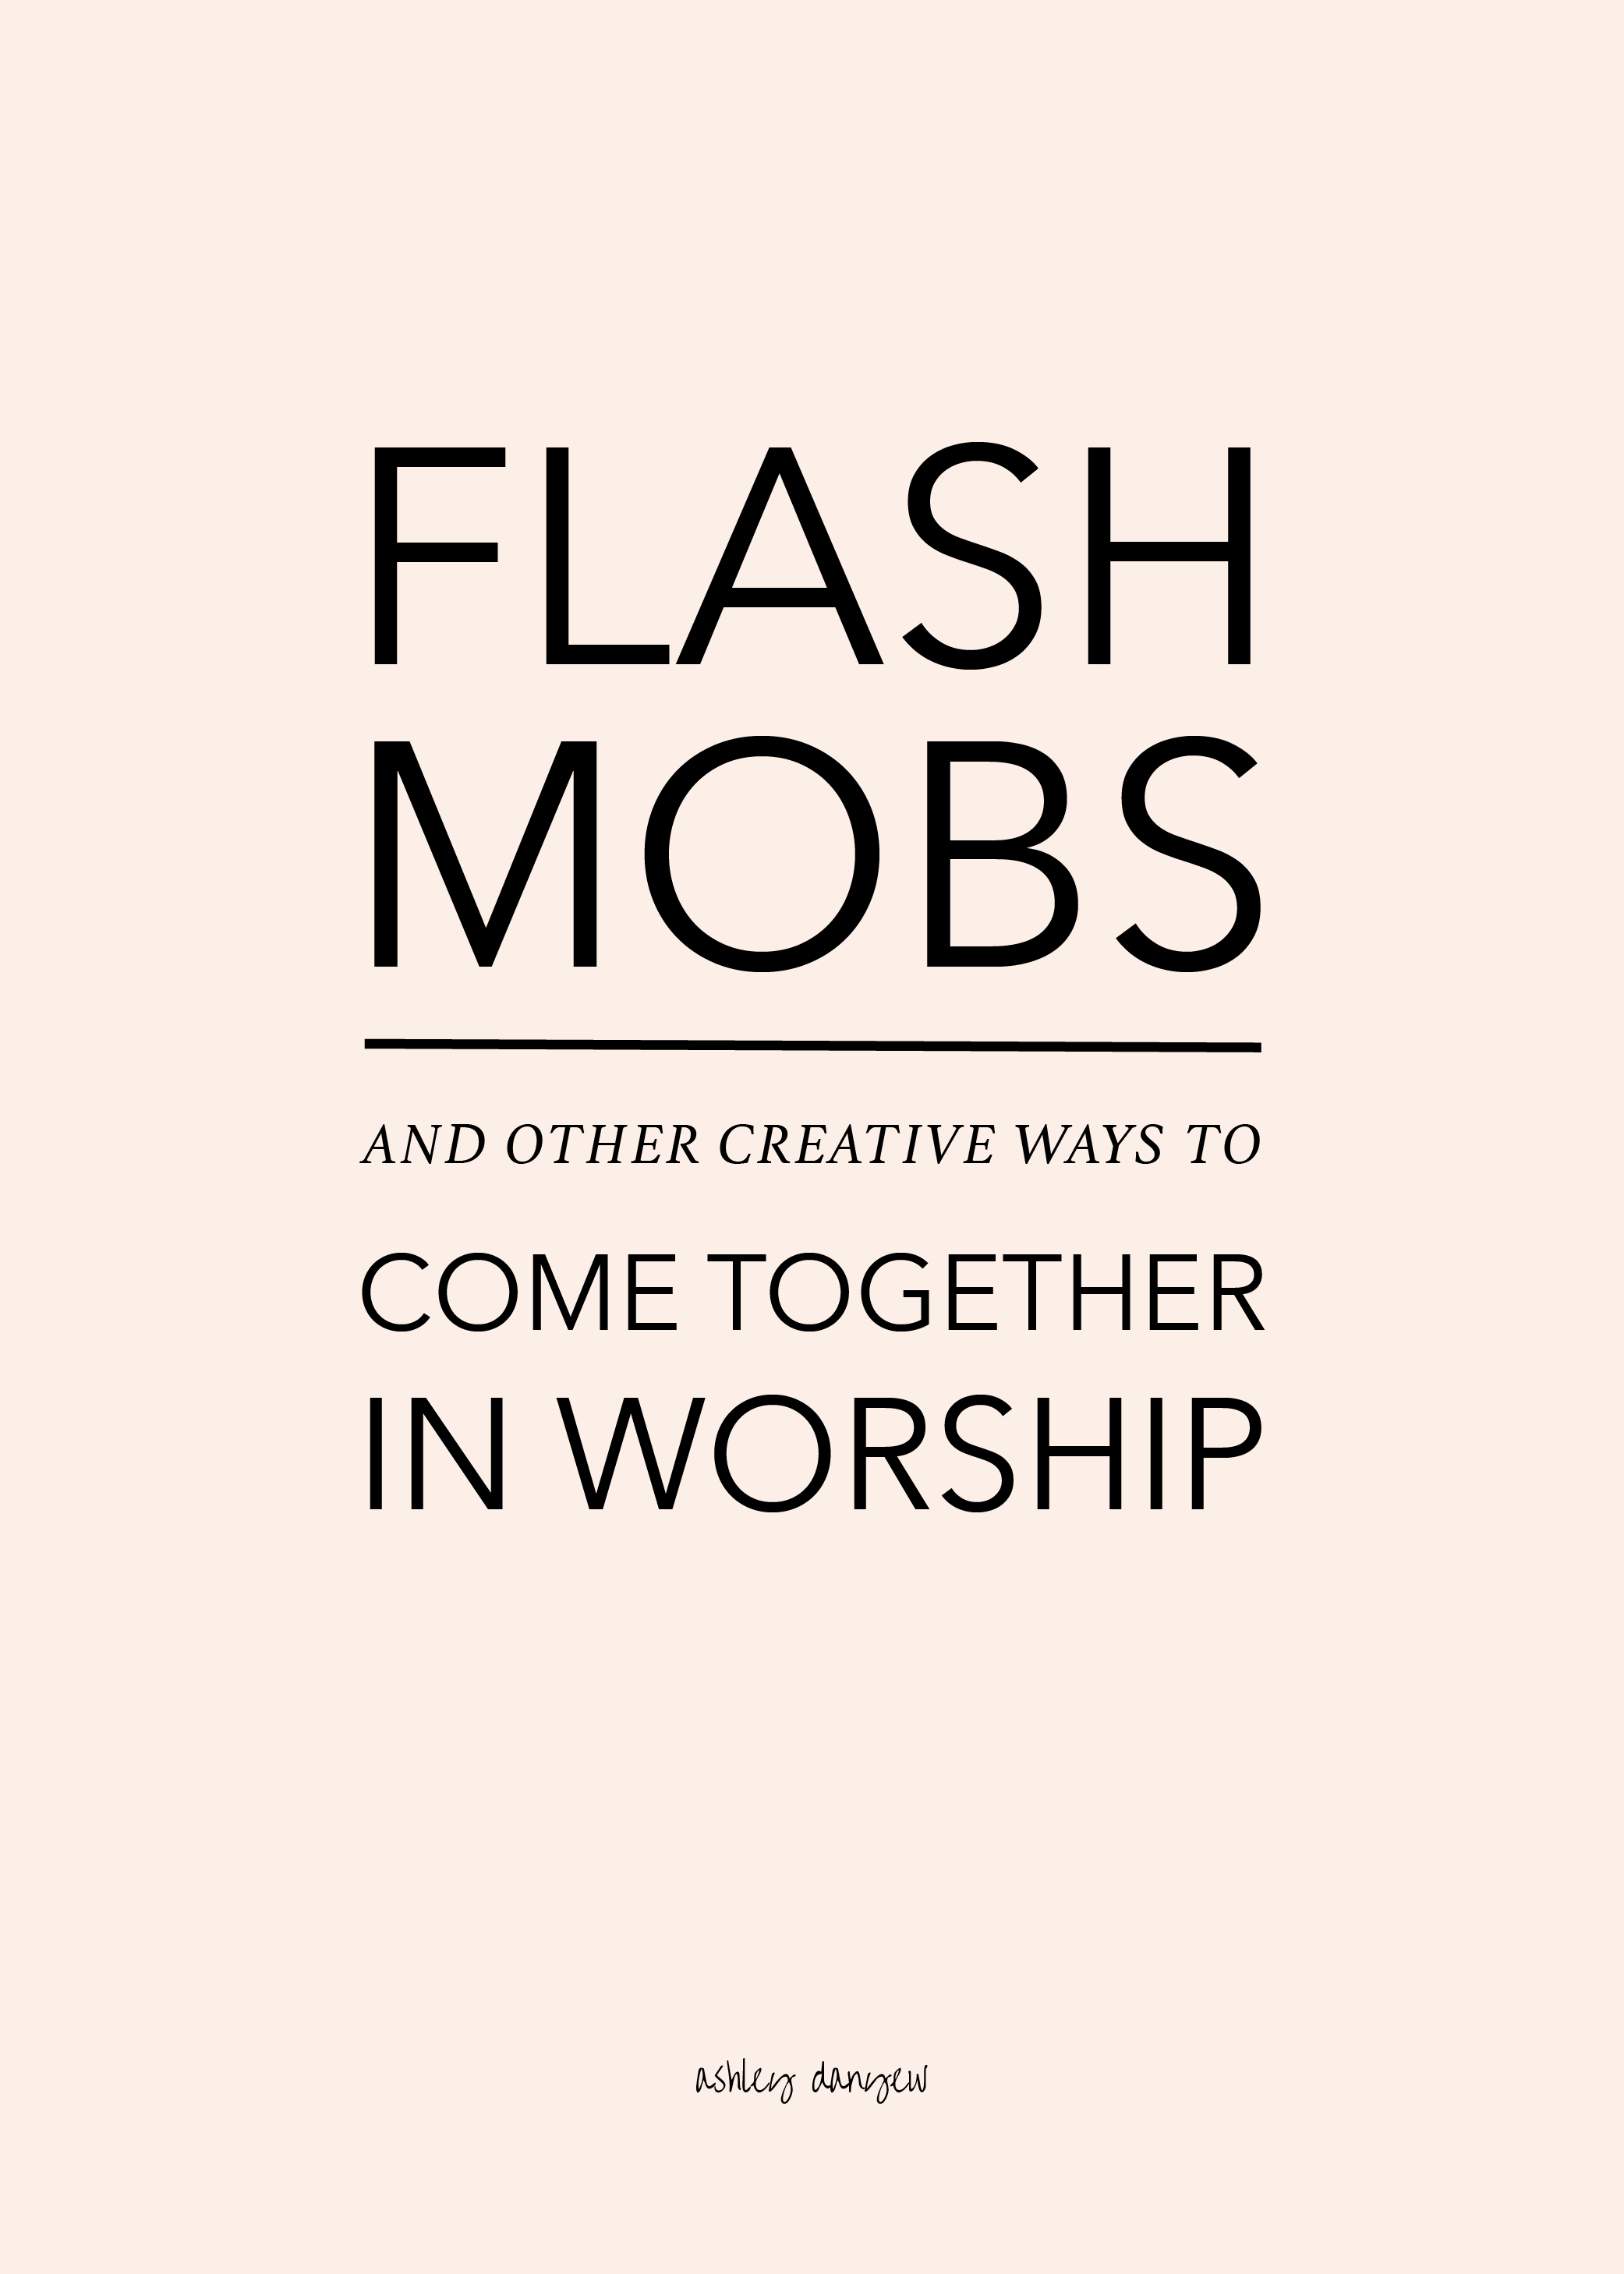 Copy of Flash Mobs and Other Creative Ways to Come Together in Worship